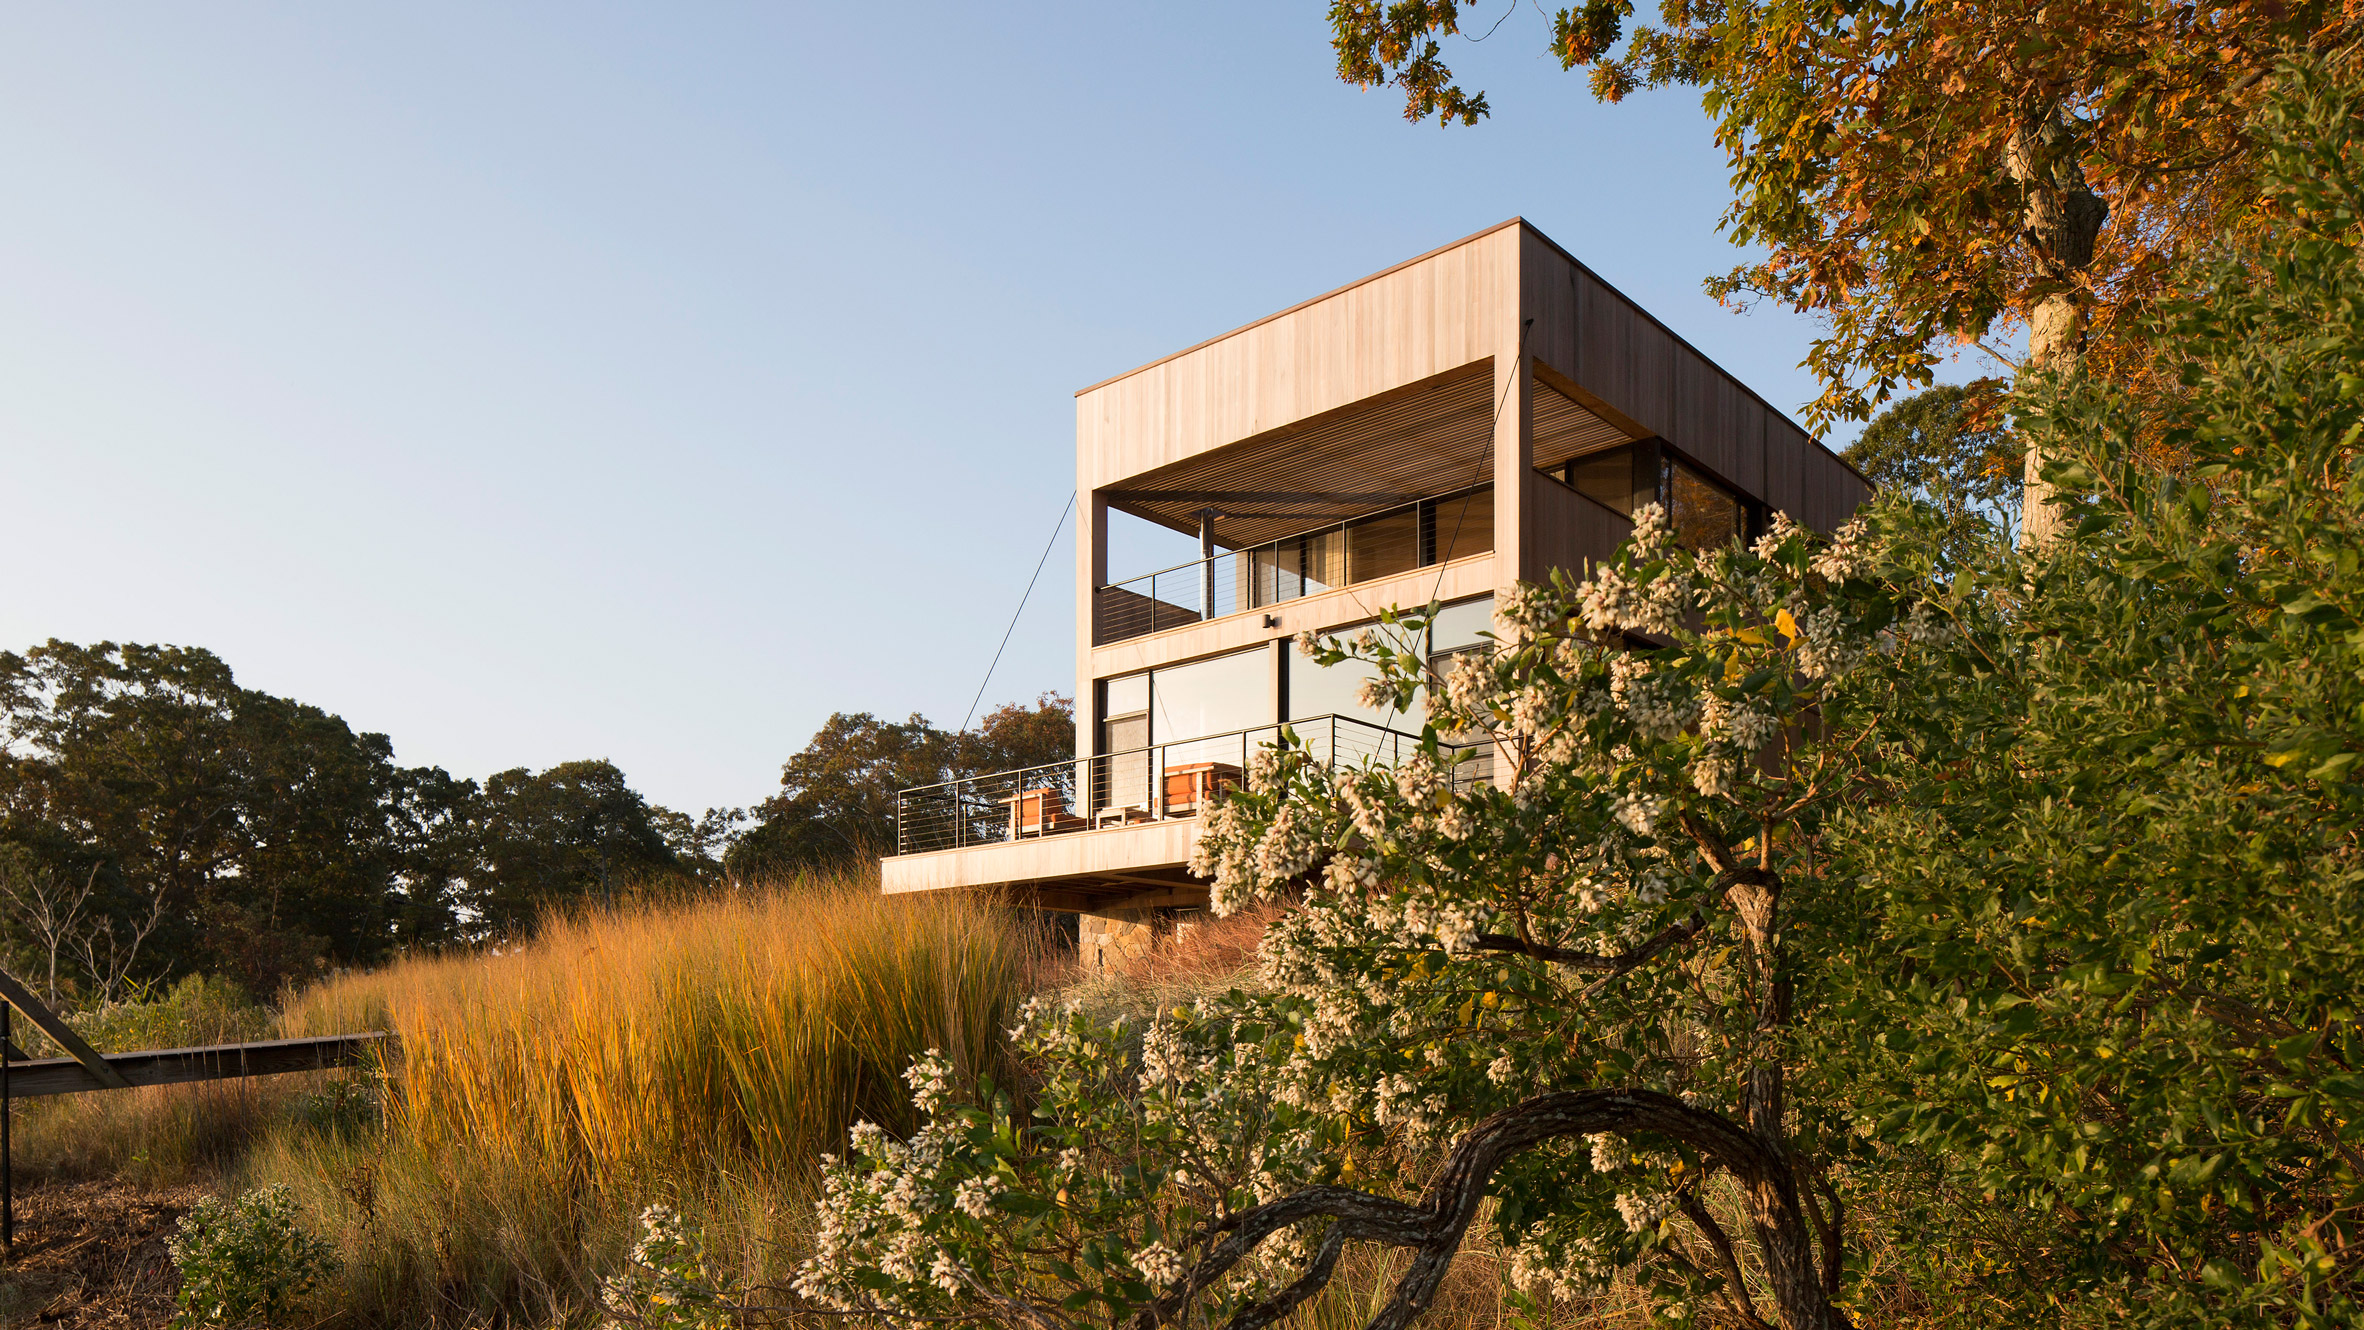 Cary Tamarkin constructs Island Creek home in the Hamptons with local materials